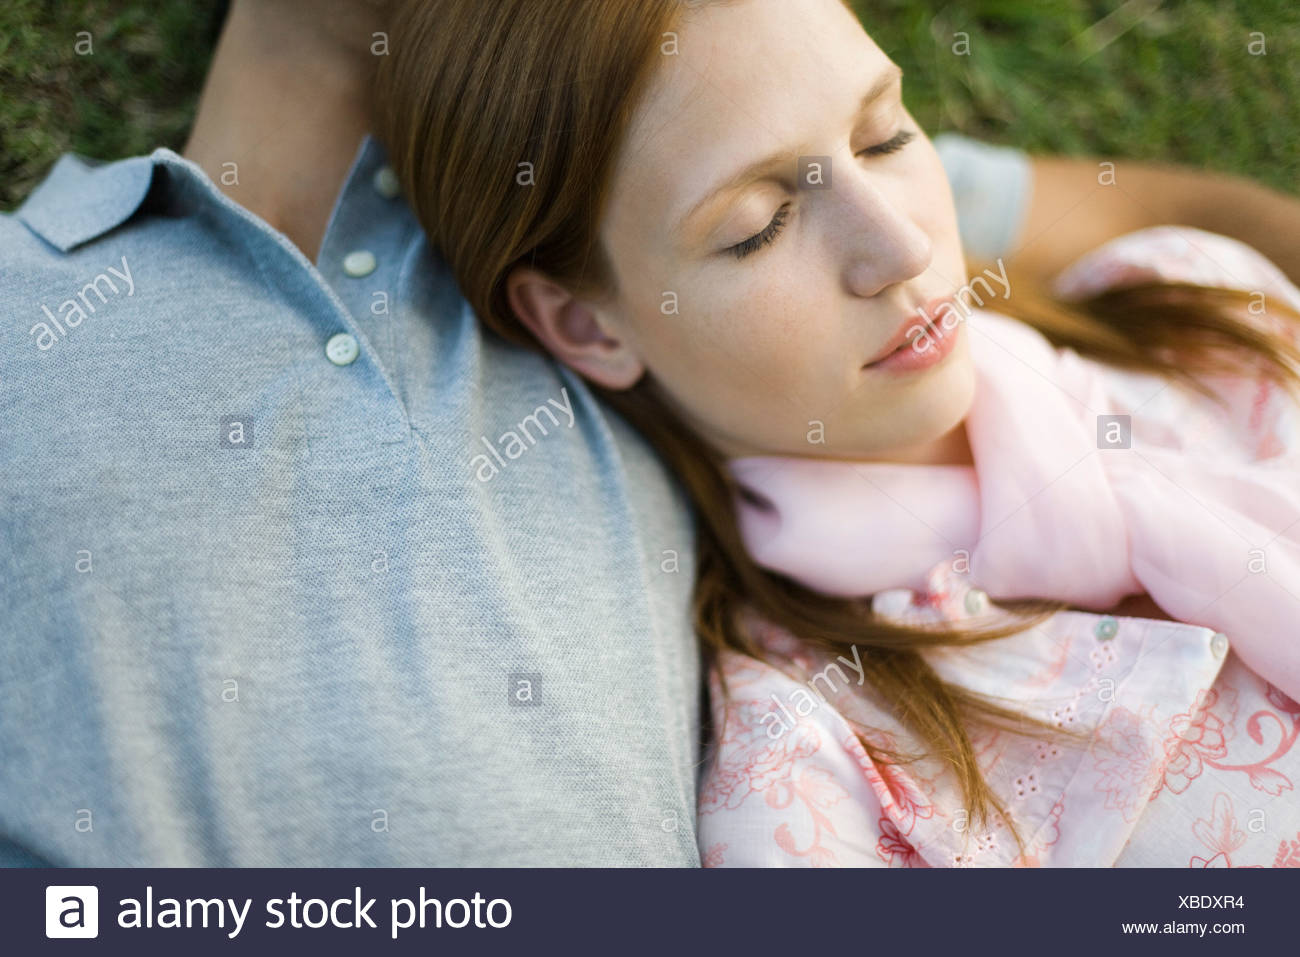 Young couple napping on ground, woman's head resting on man's chest - Stock Image